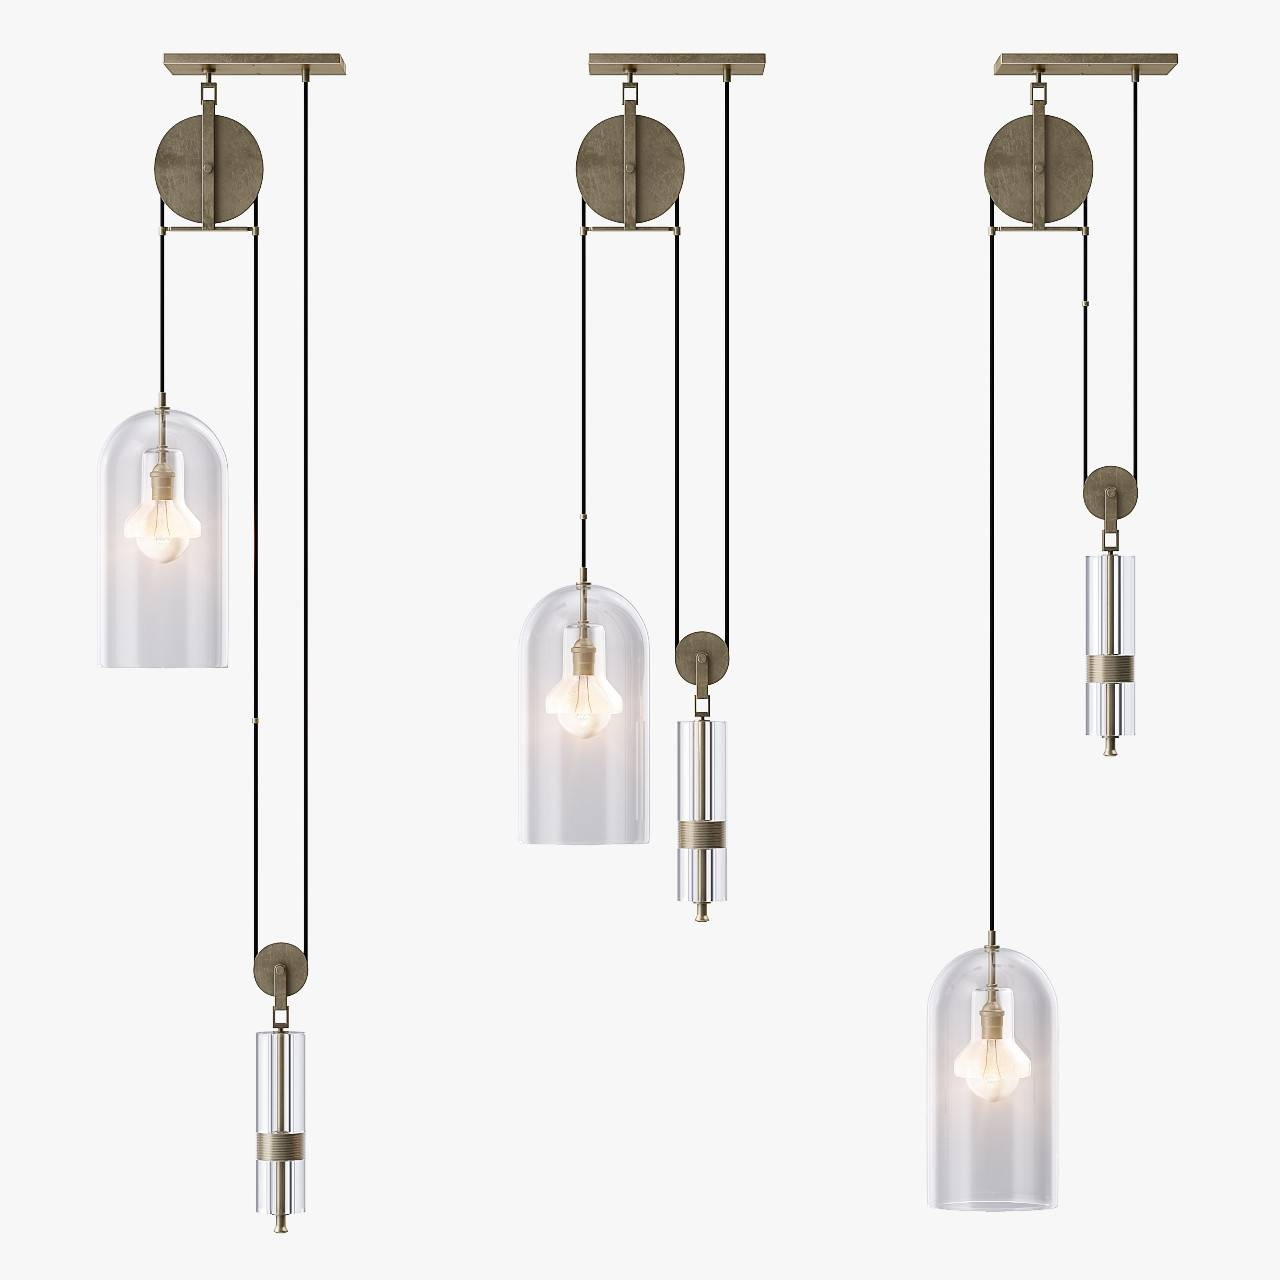 Pendant Light 3D 3Ds throughout Pulley Pendant Lights (Image 13 of 15)